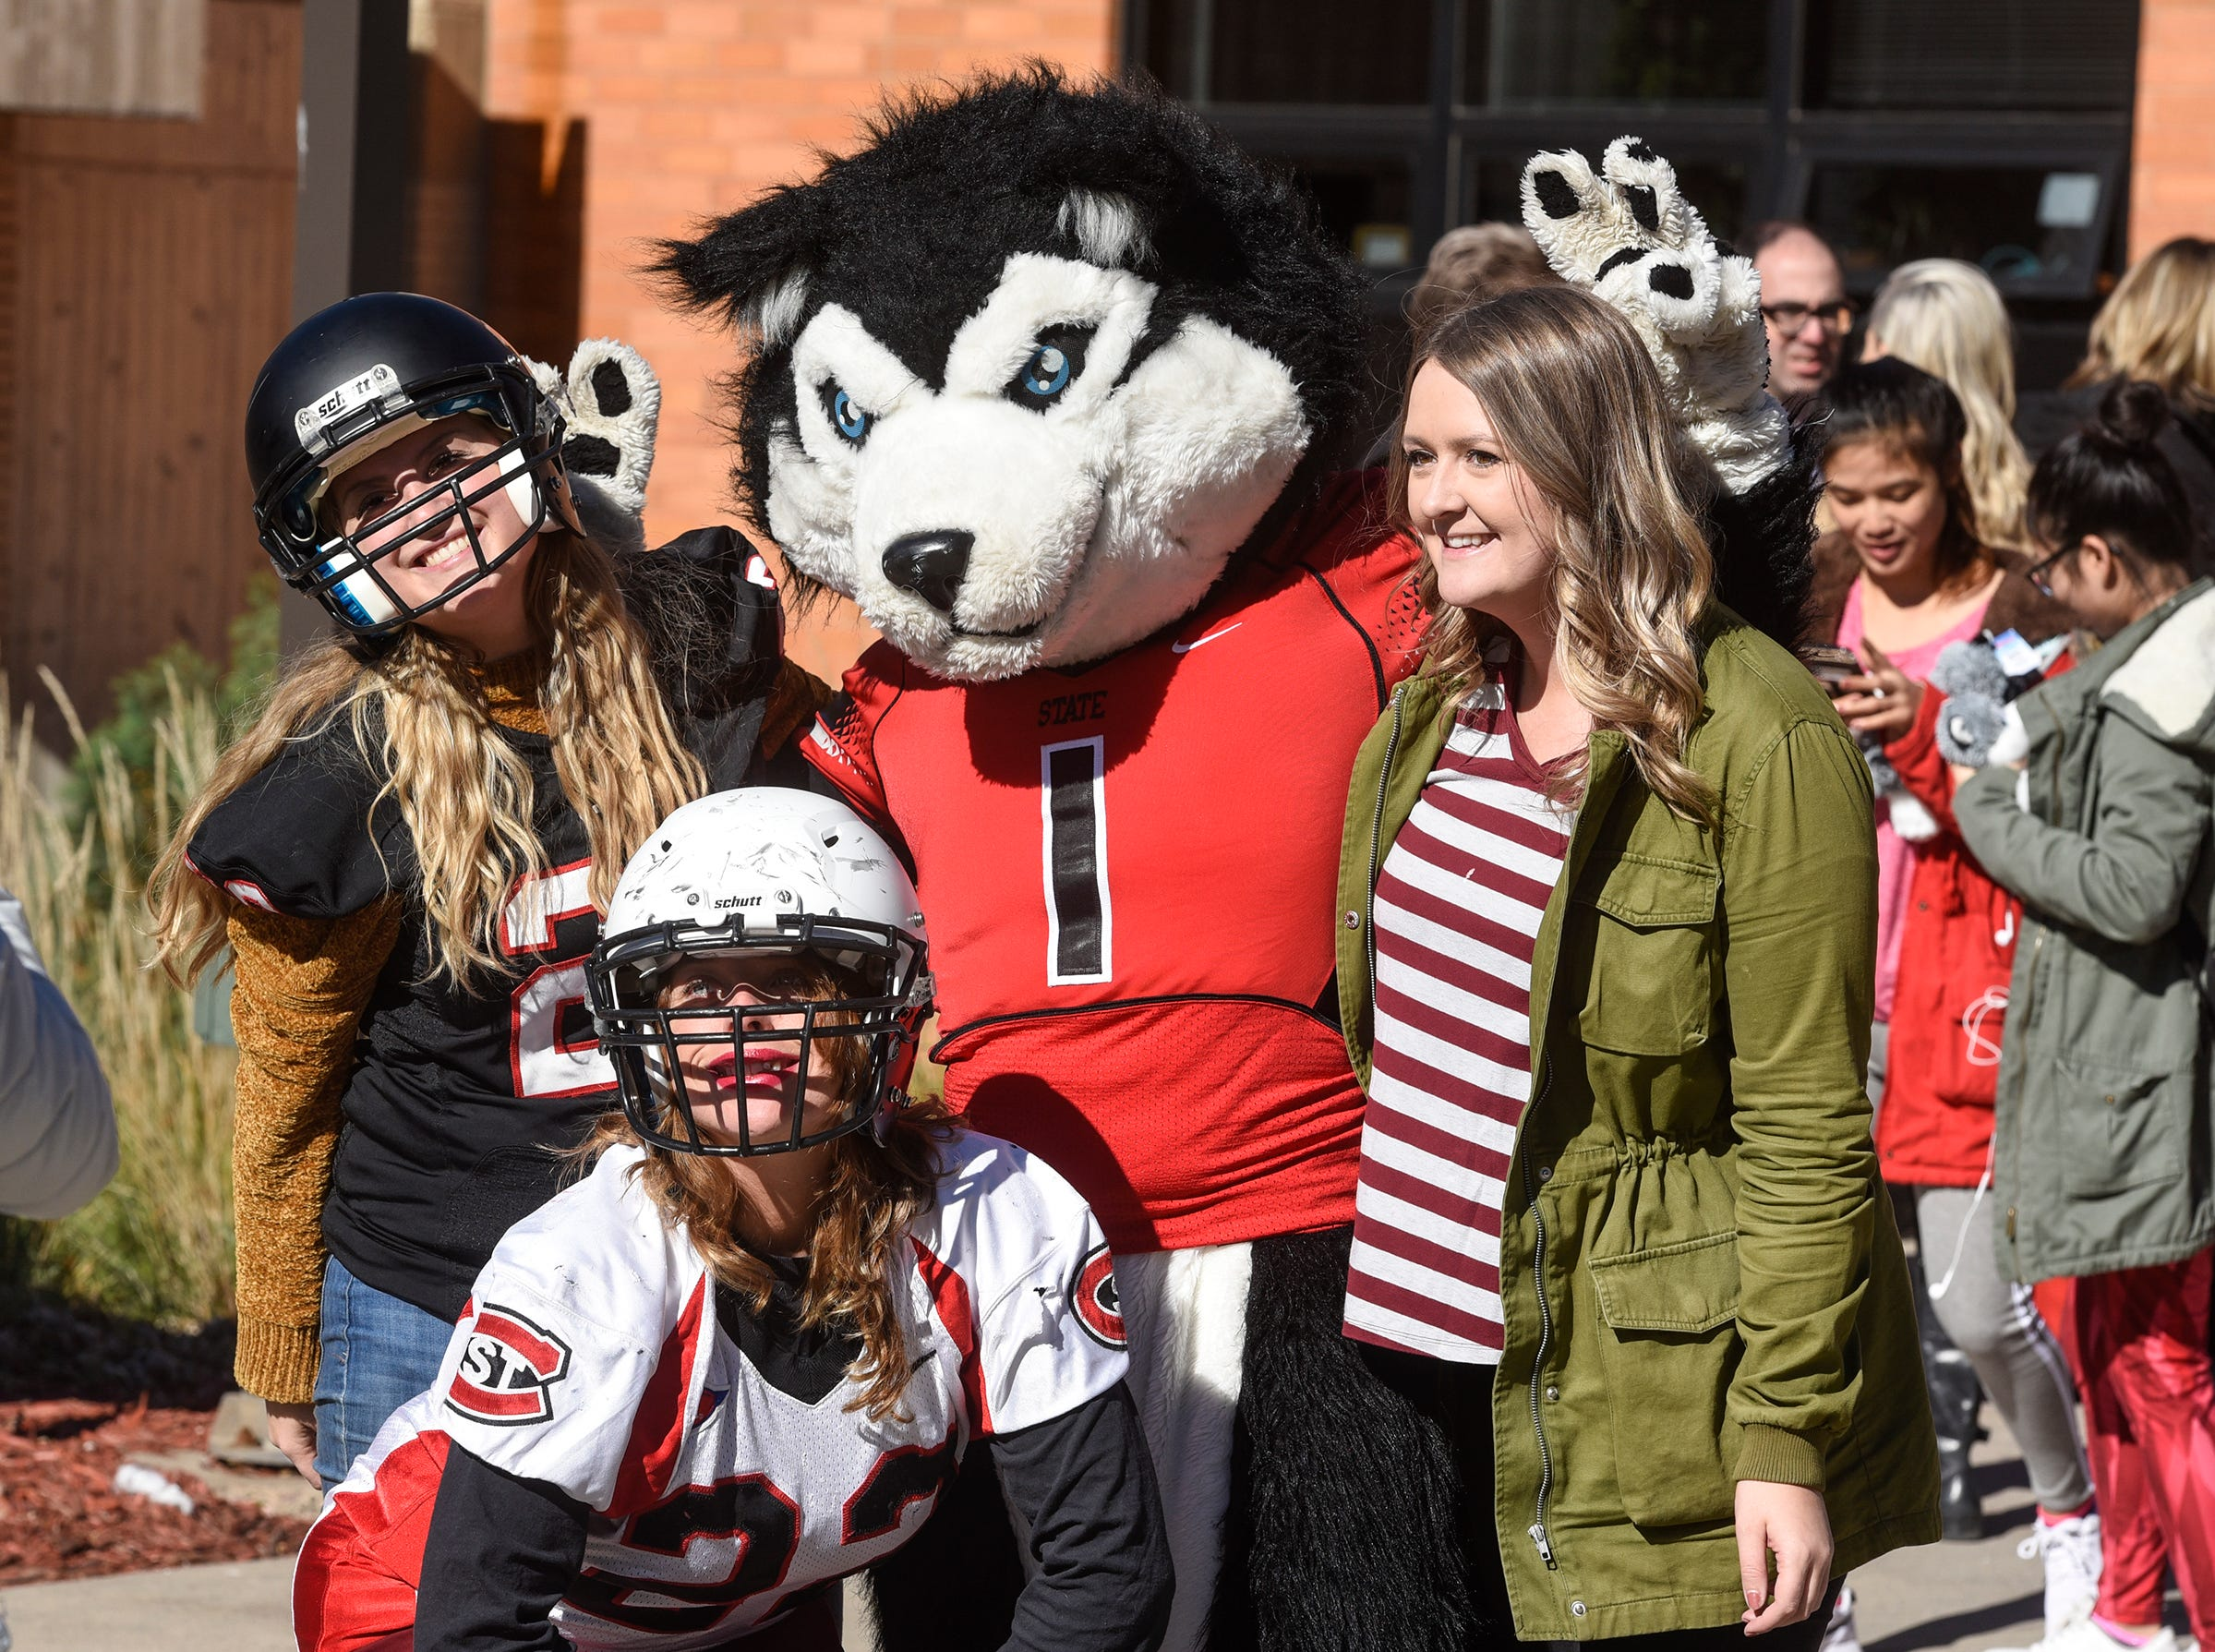 People pose for photographs with mascot Blizzard during homecoming kick-off activities Wednesday, Oct. 17, at St. Cloud State University's Atwood Memorial Center Mall.